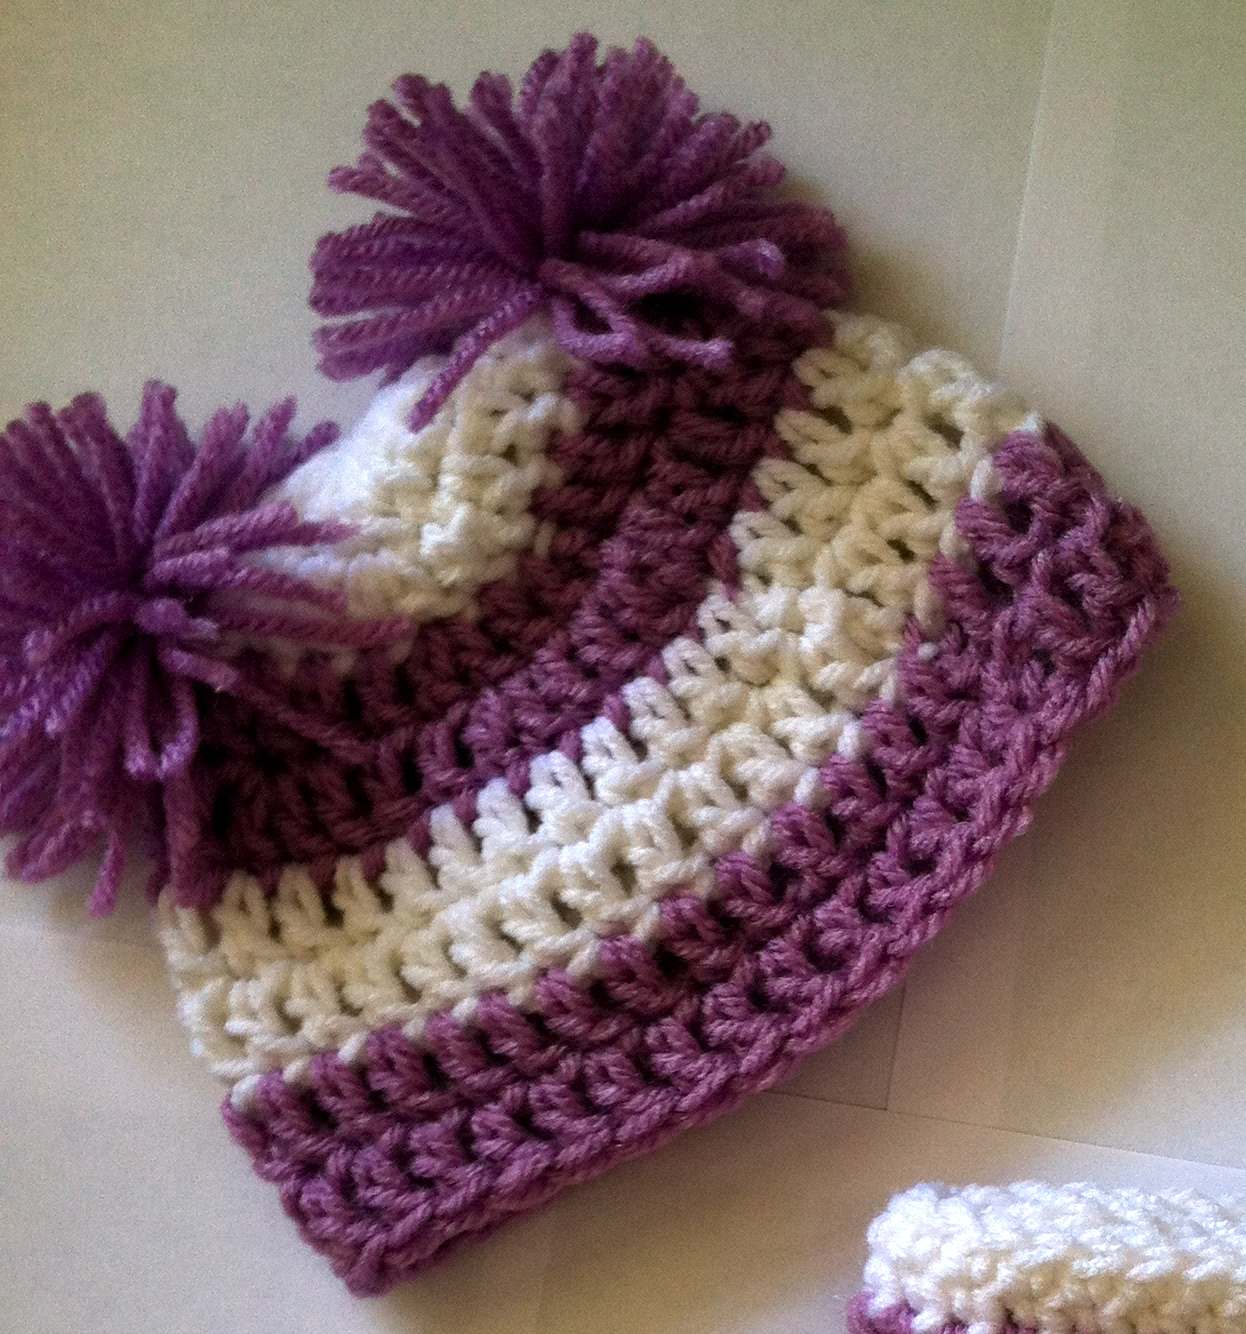 Crochet Baby Beanie Pattern Easy : Basic Beanie Free Crochet Pattern Family Bugs Blogging